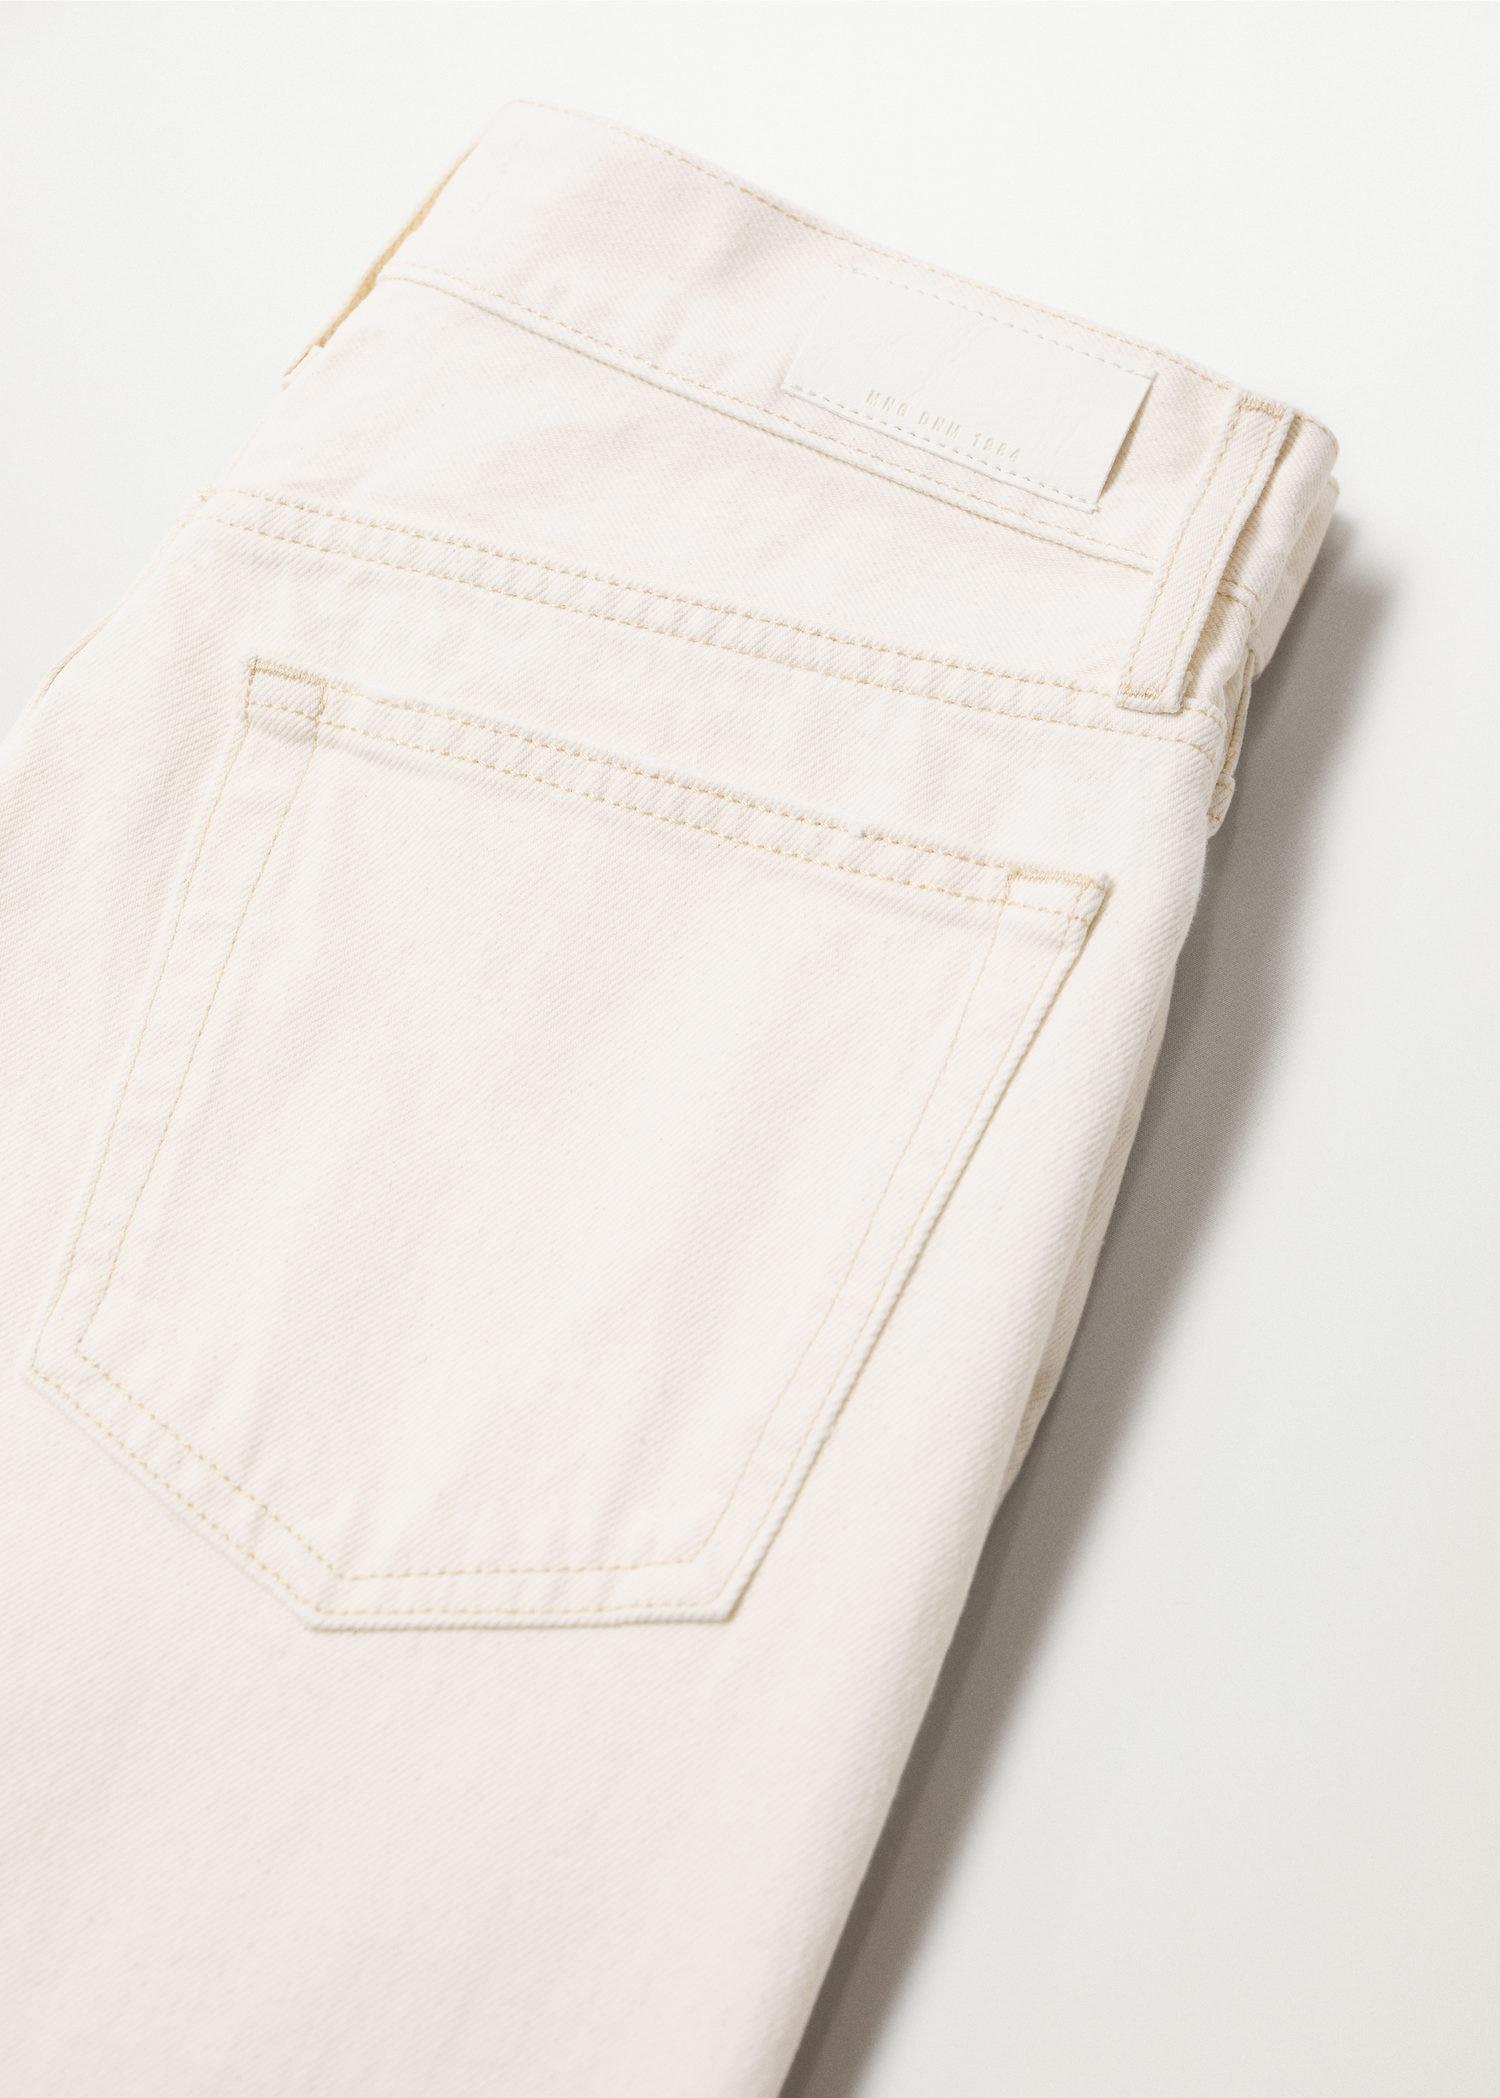 Decorative rips relaxed jeans 8